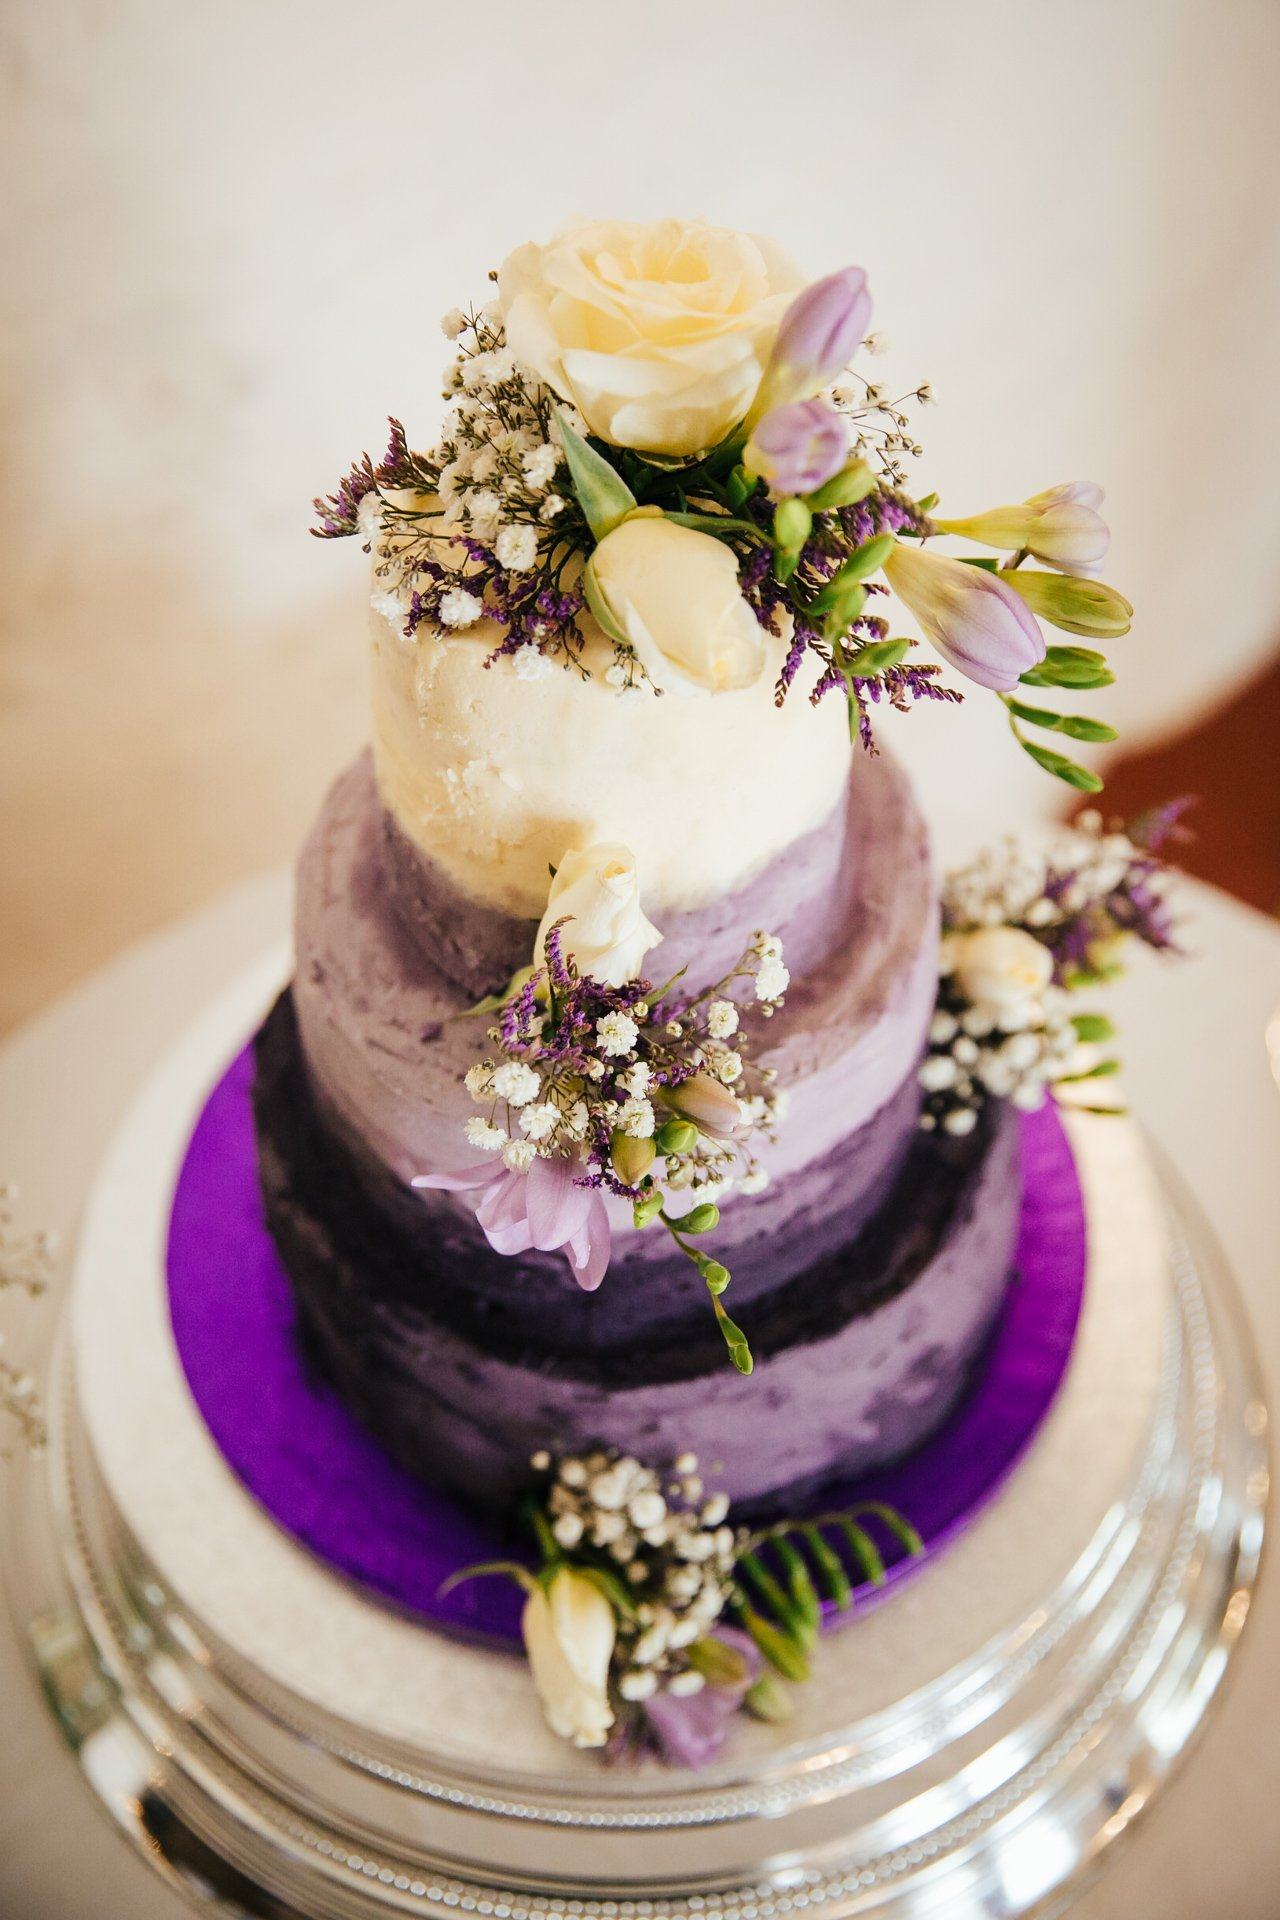 Stunning three tier wedding cake, rustic texture adorned with flowers